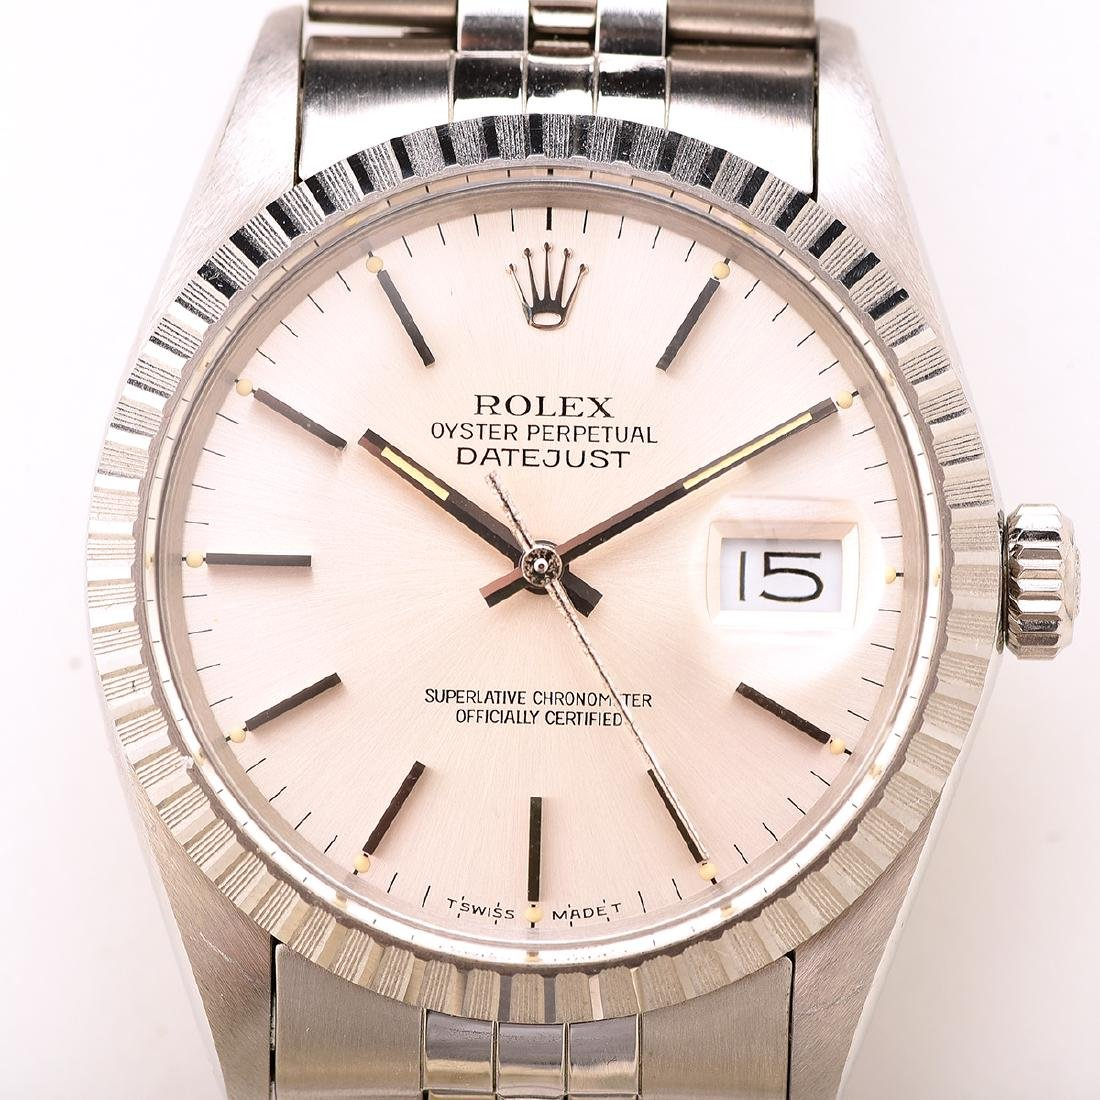 Rolex Oyster Perpetual Datejust Stainless Steel - 2